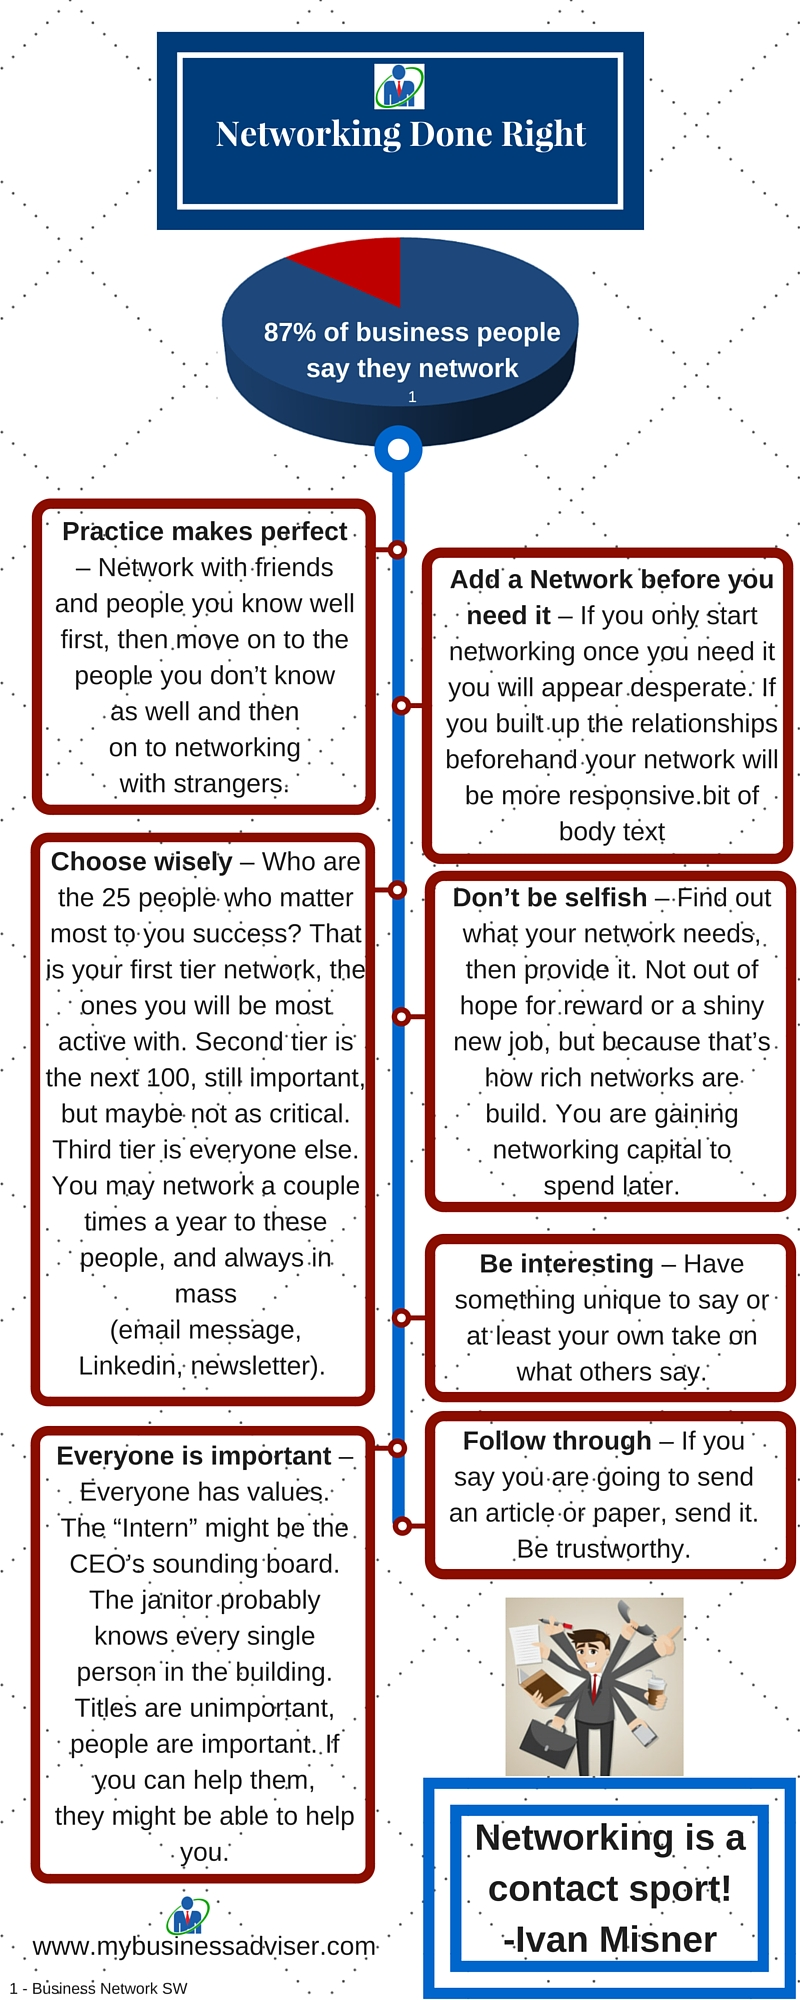 Networking Done Right